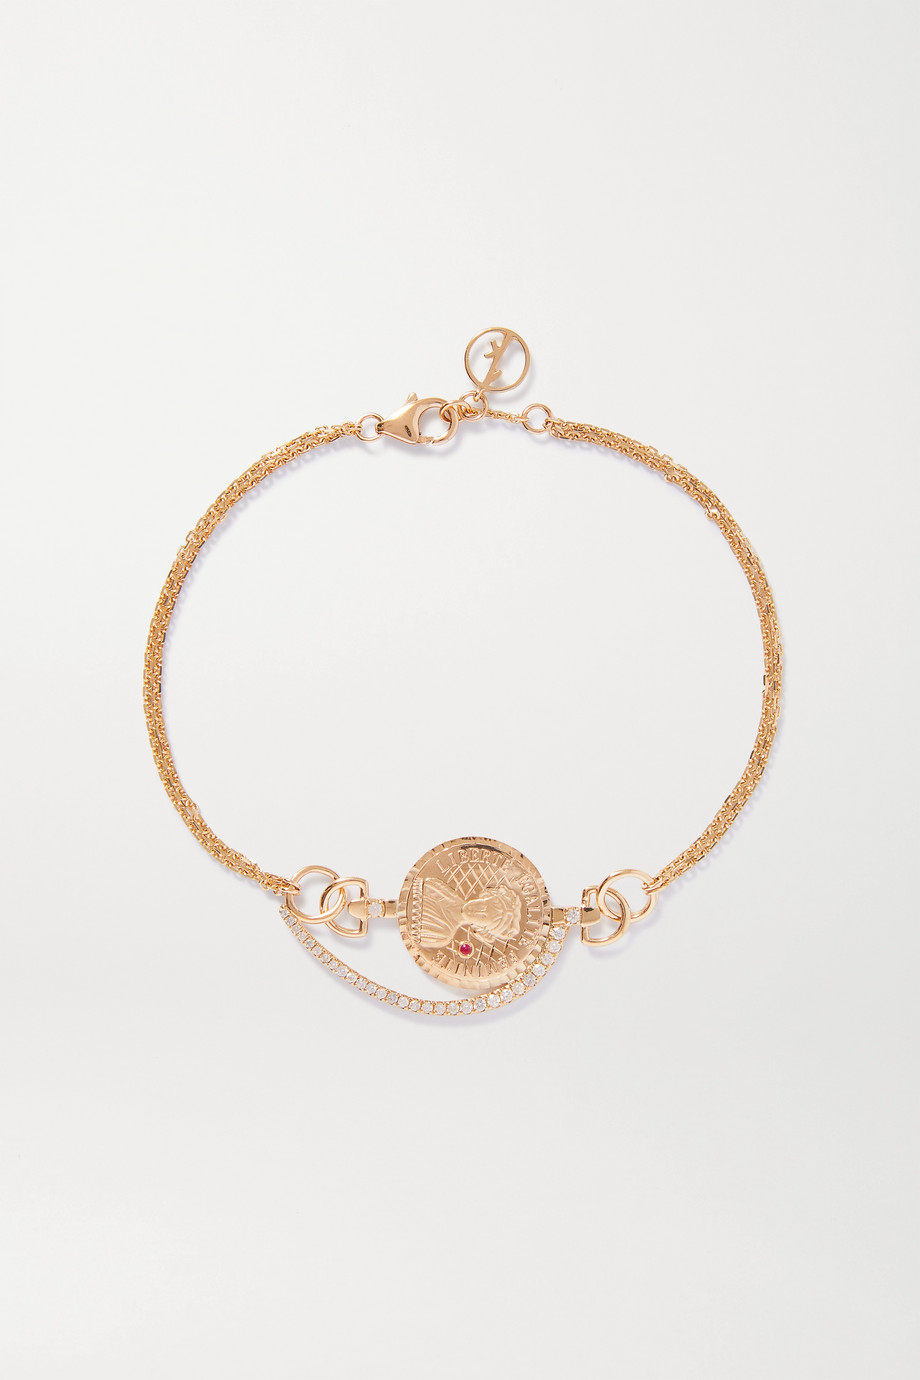 Anissa Kermiche Louise d'Or Coin 14K 黄金多种宝石手链